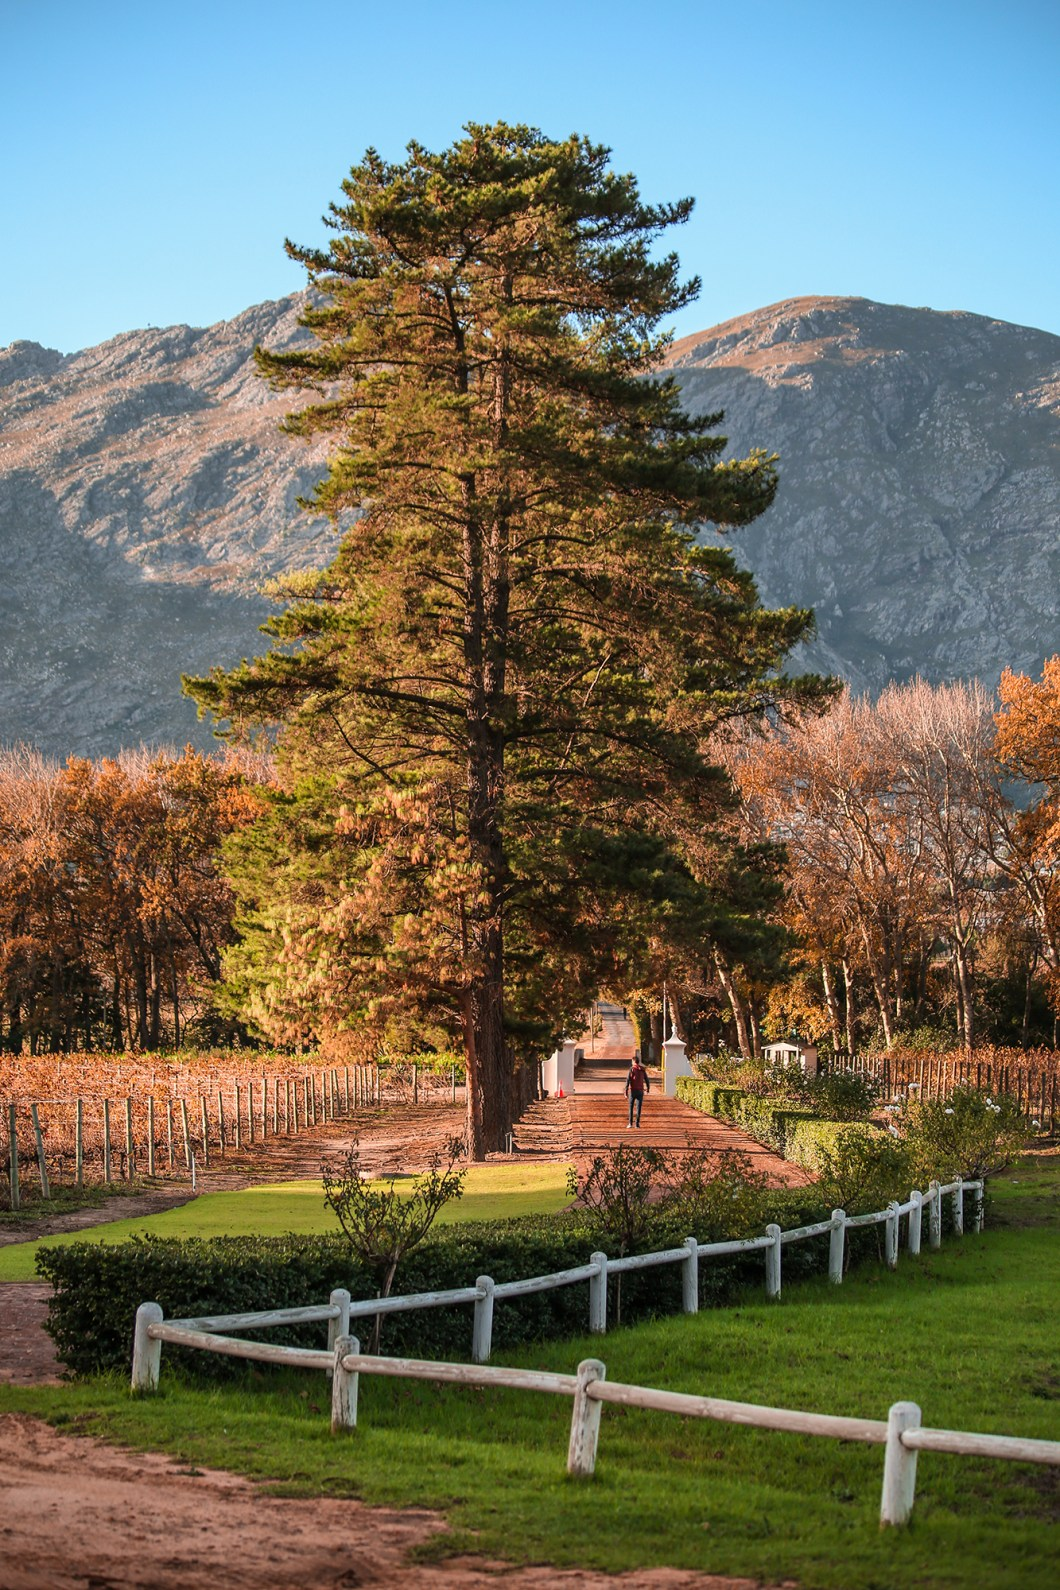 Franschhoek South Africa | How Far From Home